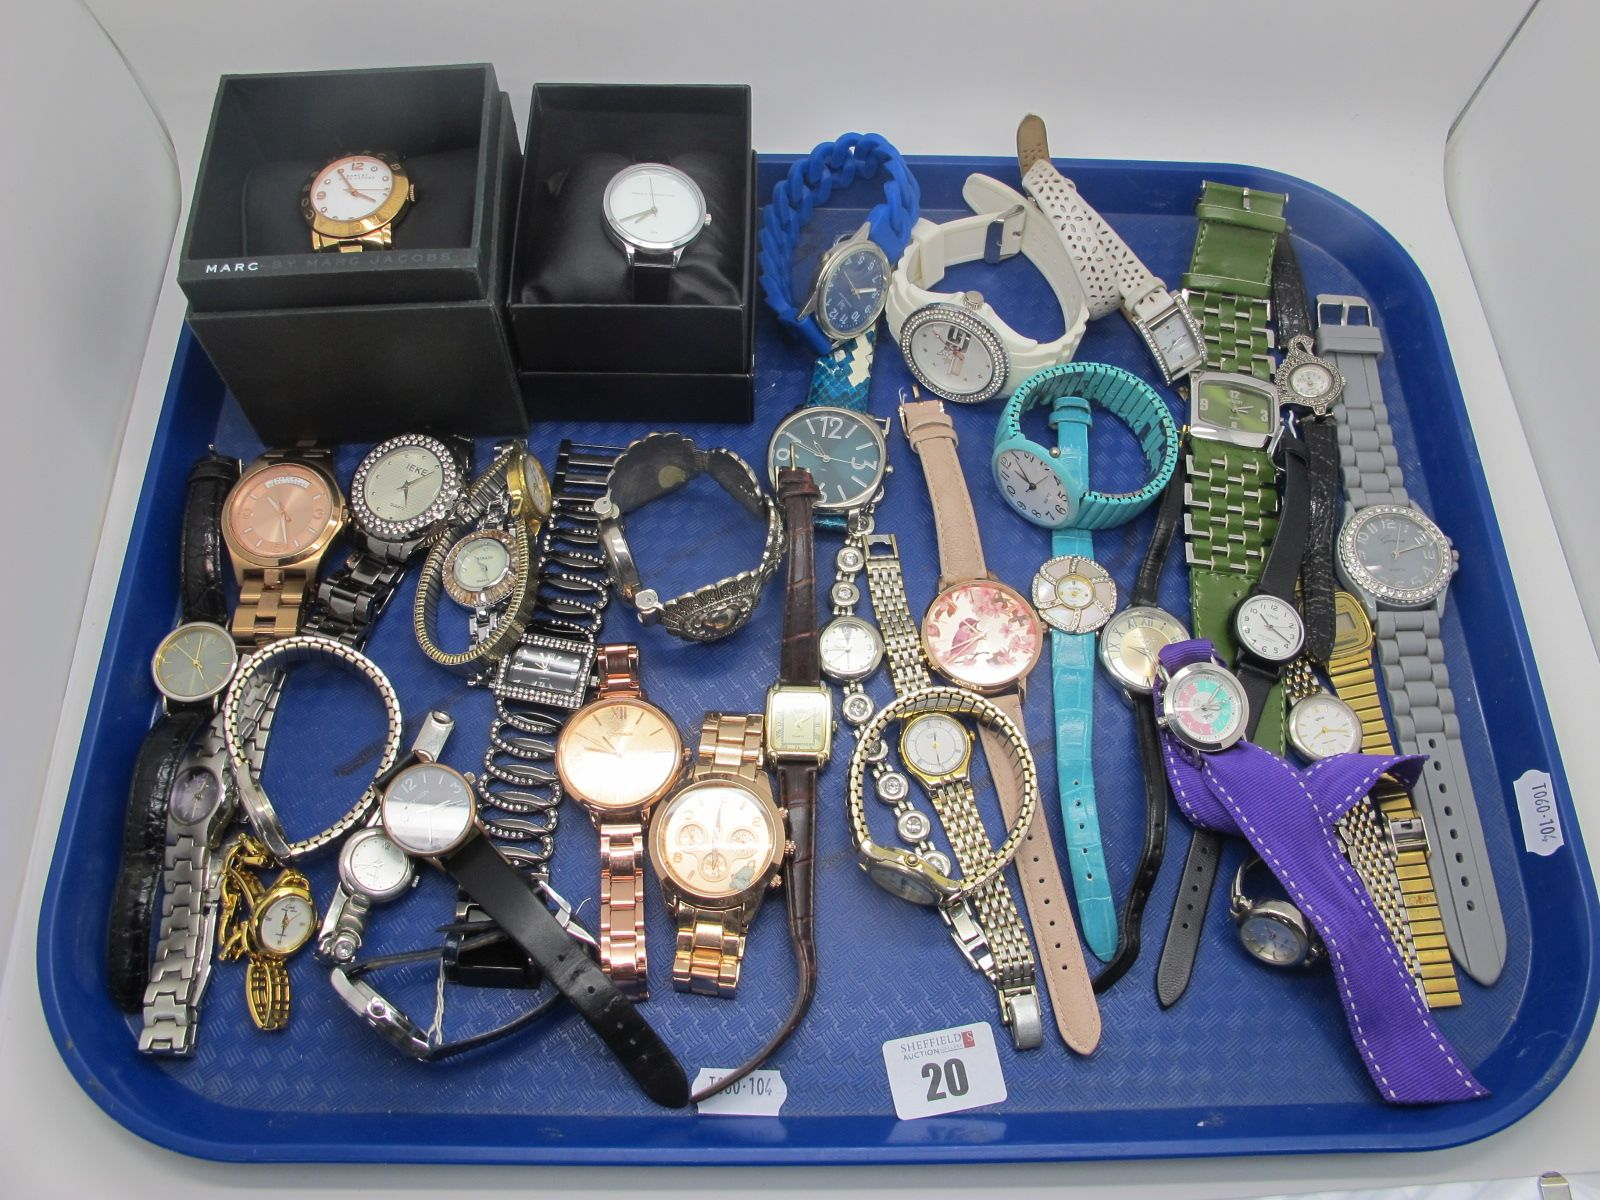 Marc by Marc Jacobs, French Connection, Guess, Orus, Strada, Casio and other modern ladies